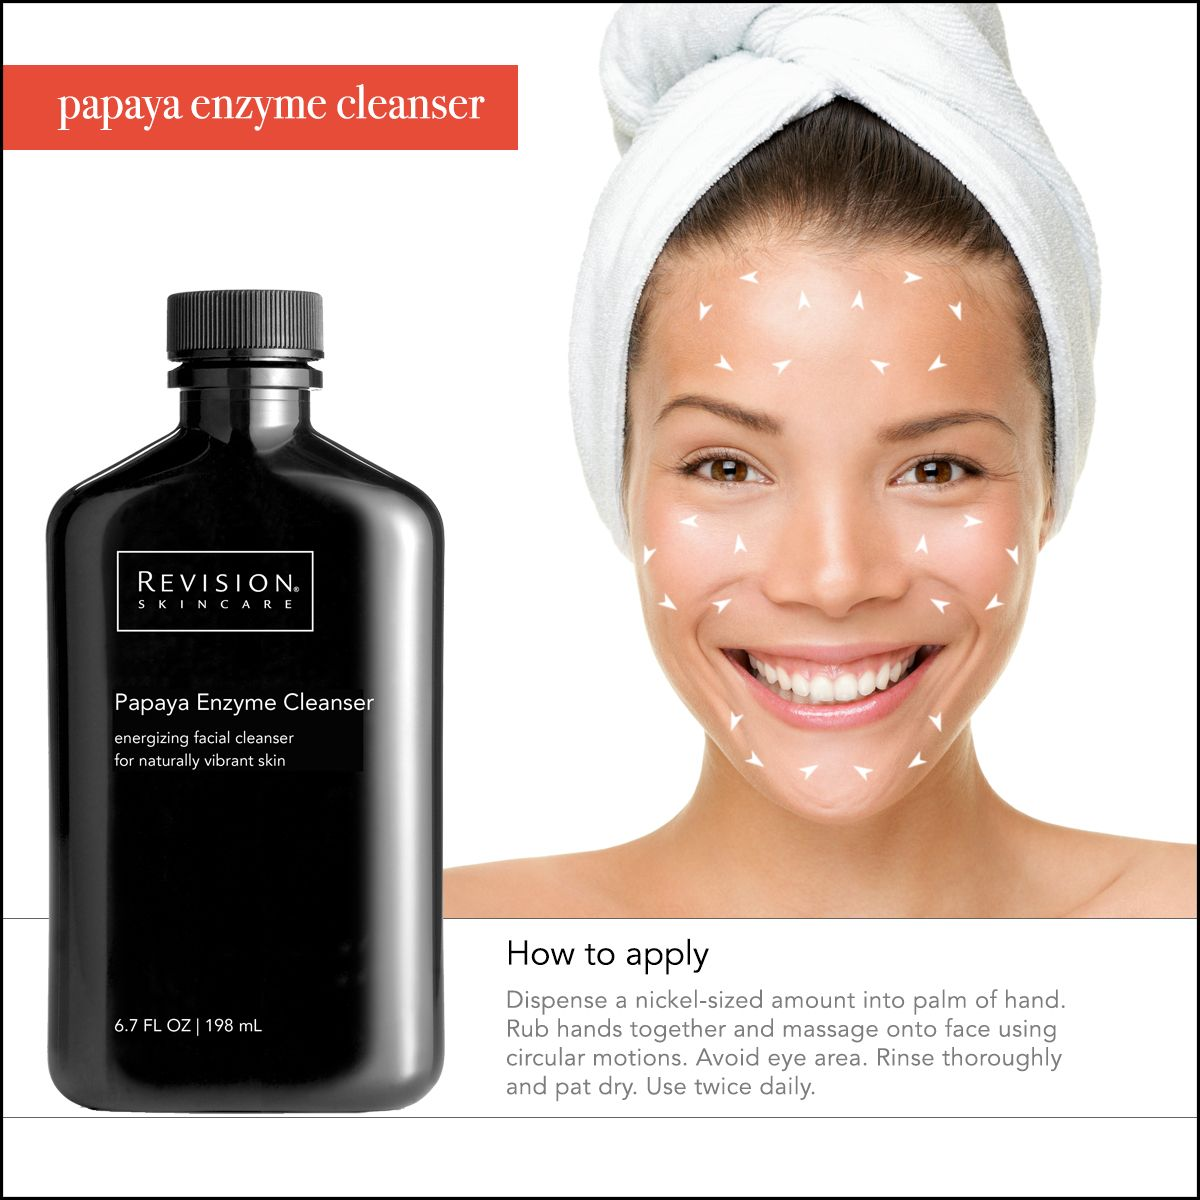 Papaya Enzyme Cleanser Skin Cleanser Products Papaya Enzyme Cleanser